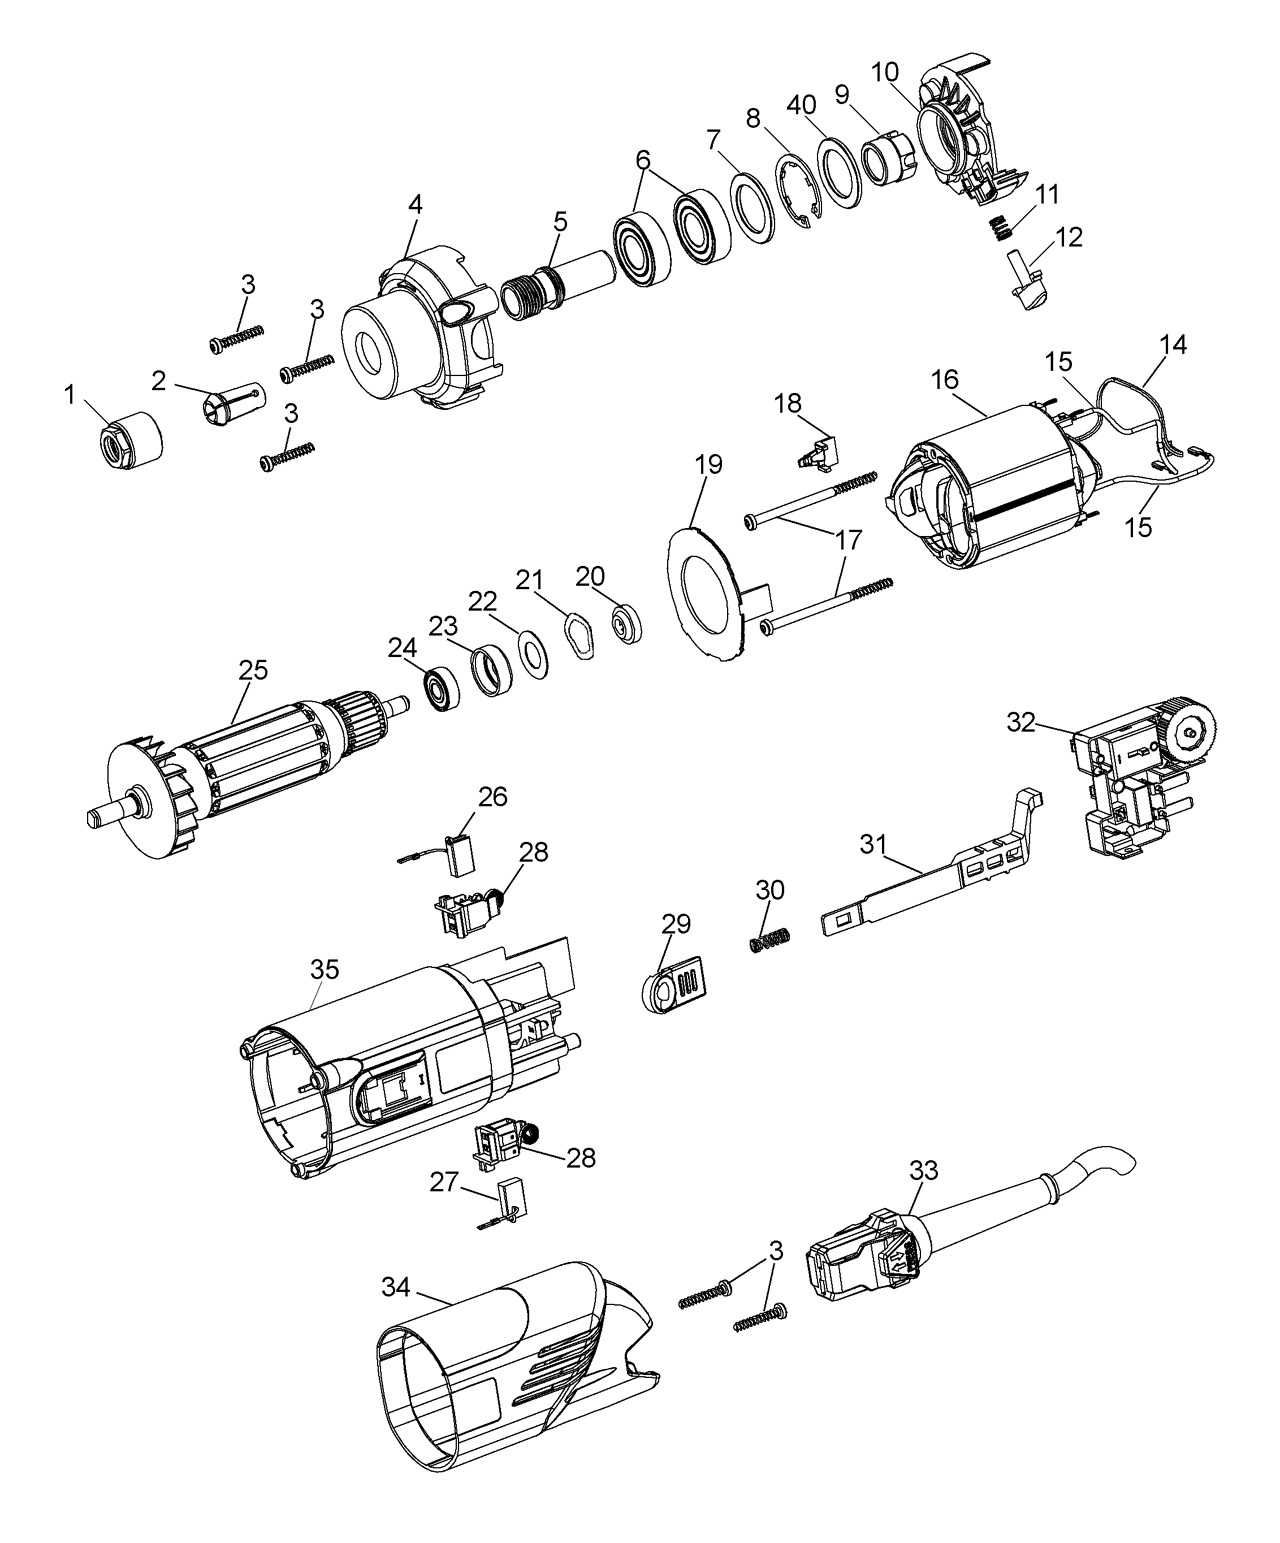 48962 amb kress spare parts